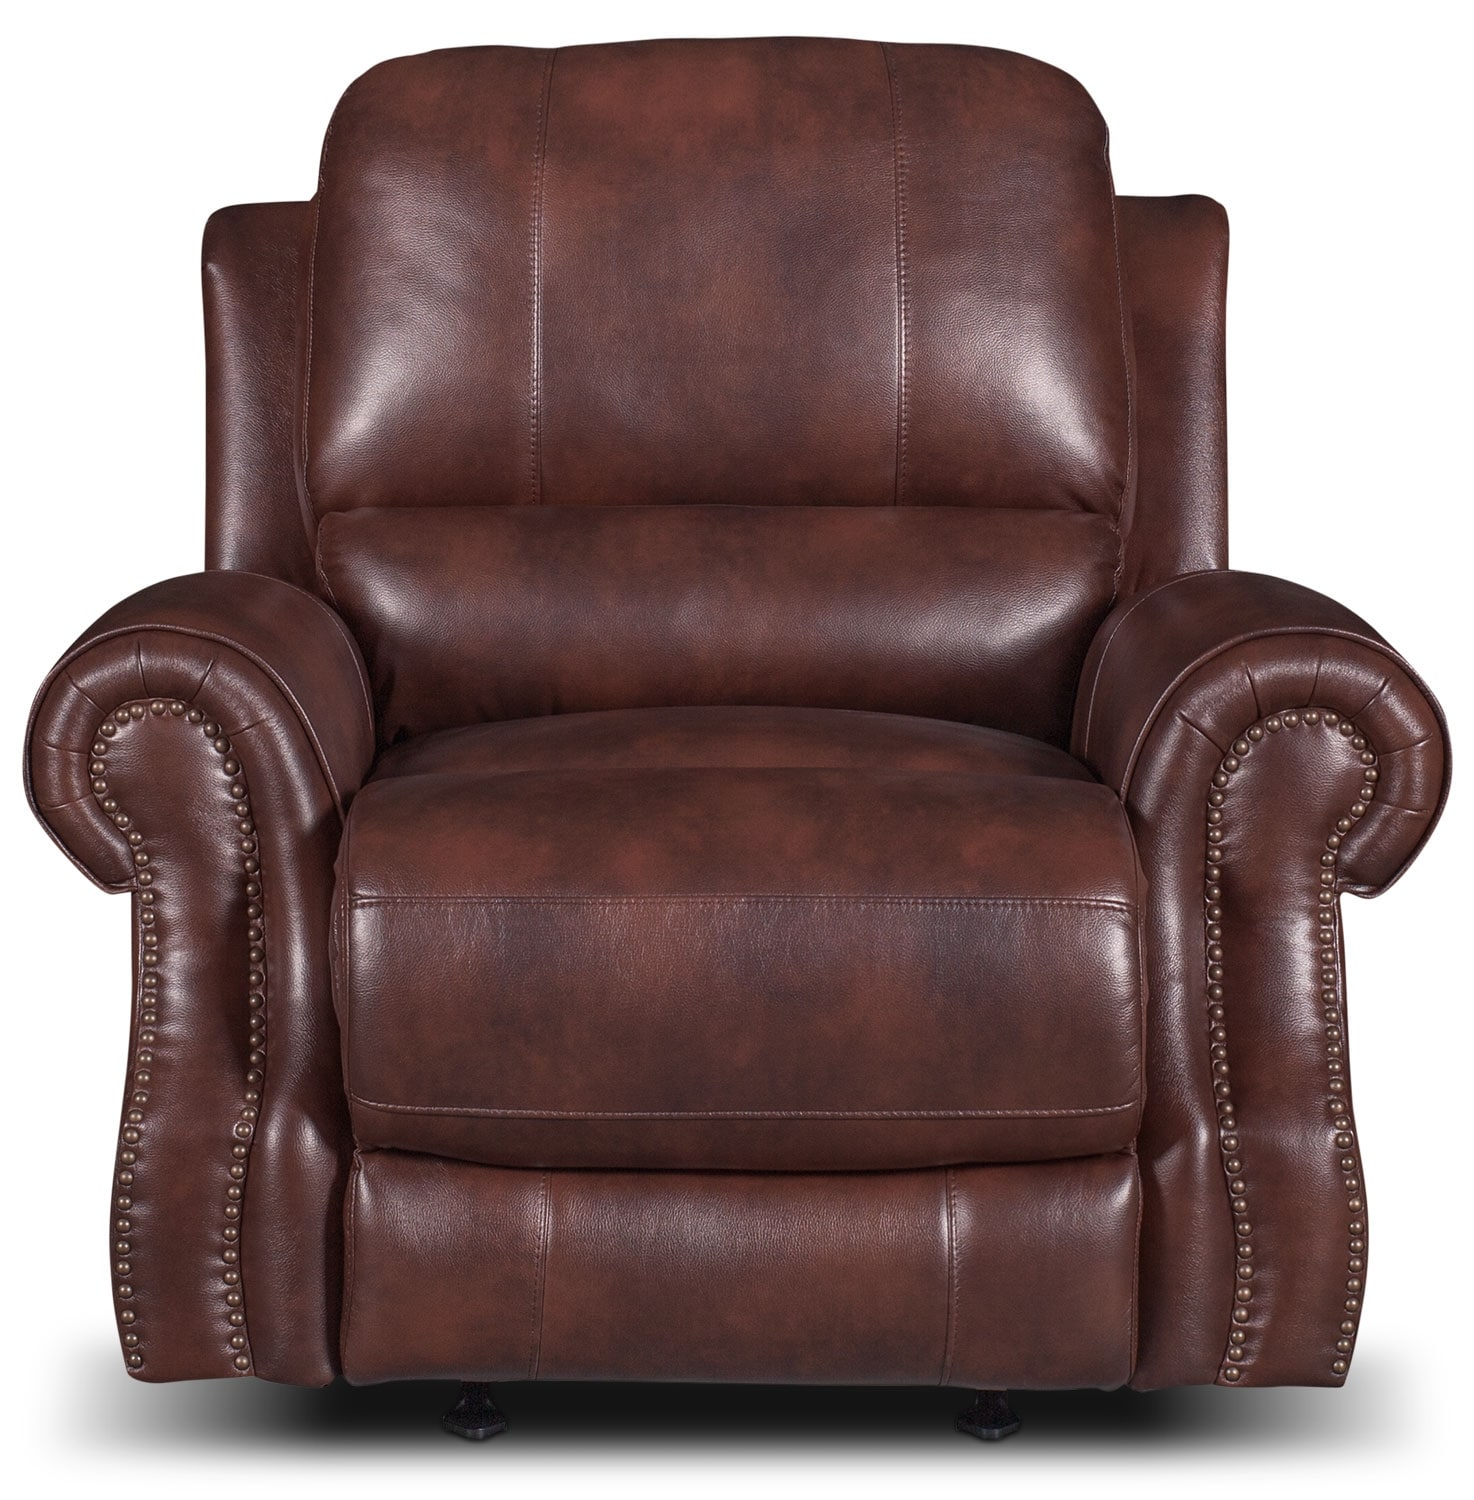 Magnum Leather-Look Fabric Reclining Chair – Brown